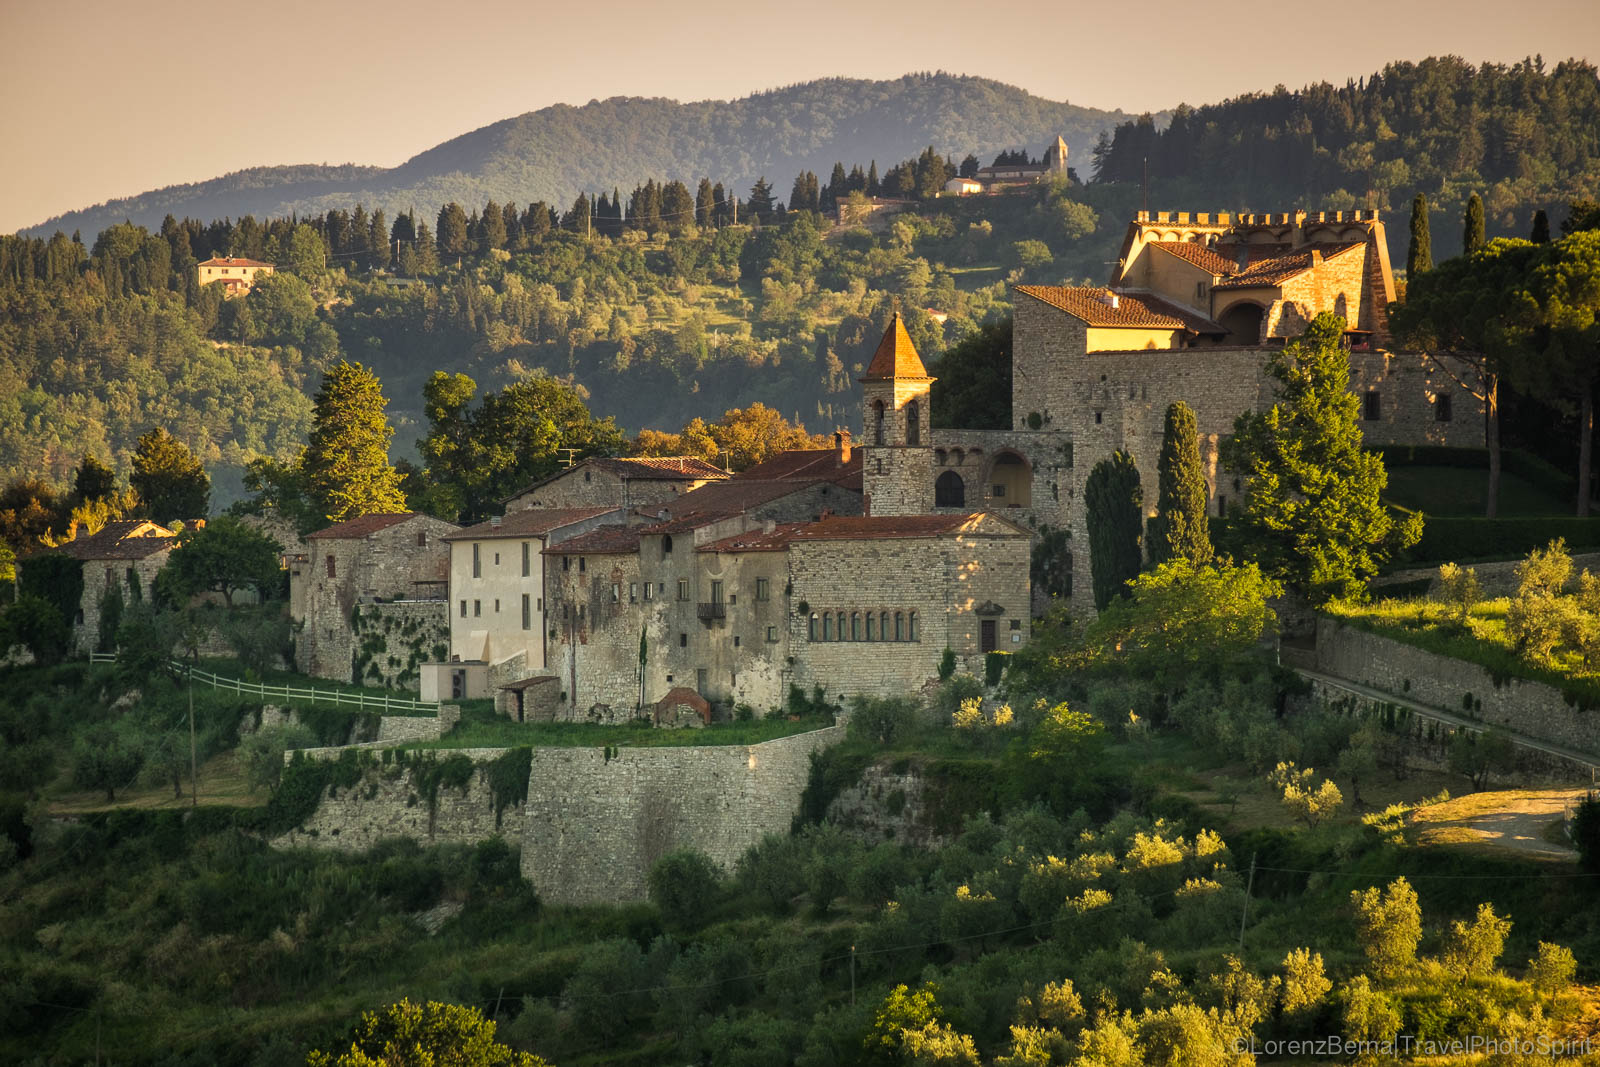 Morning lights over Nipozzano castle, Tuscany, Italy